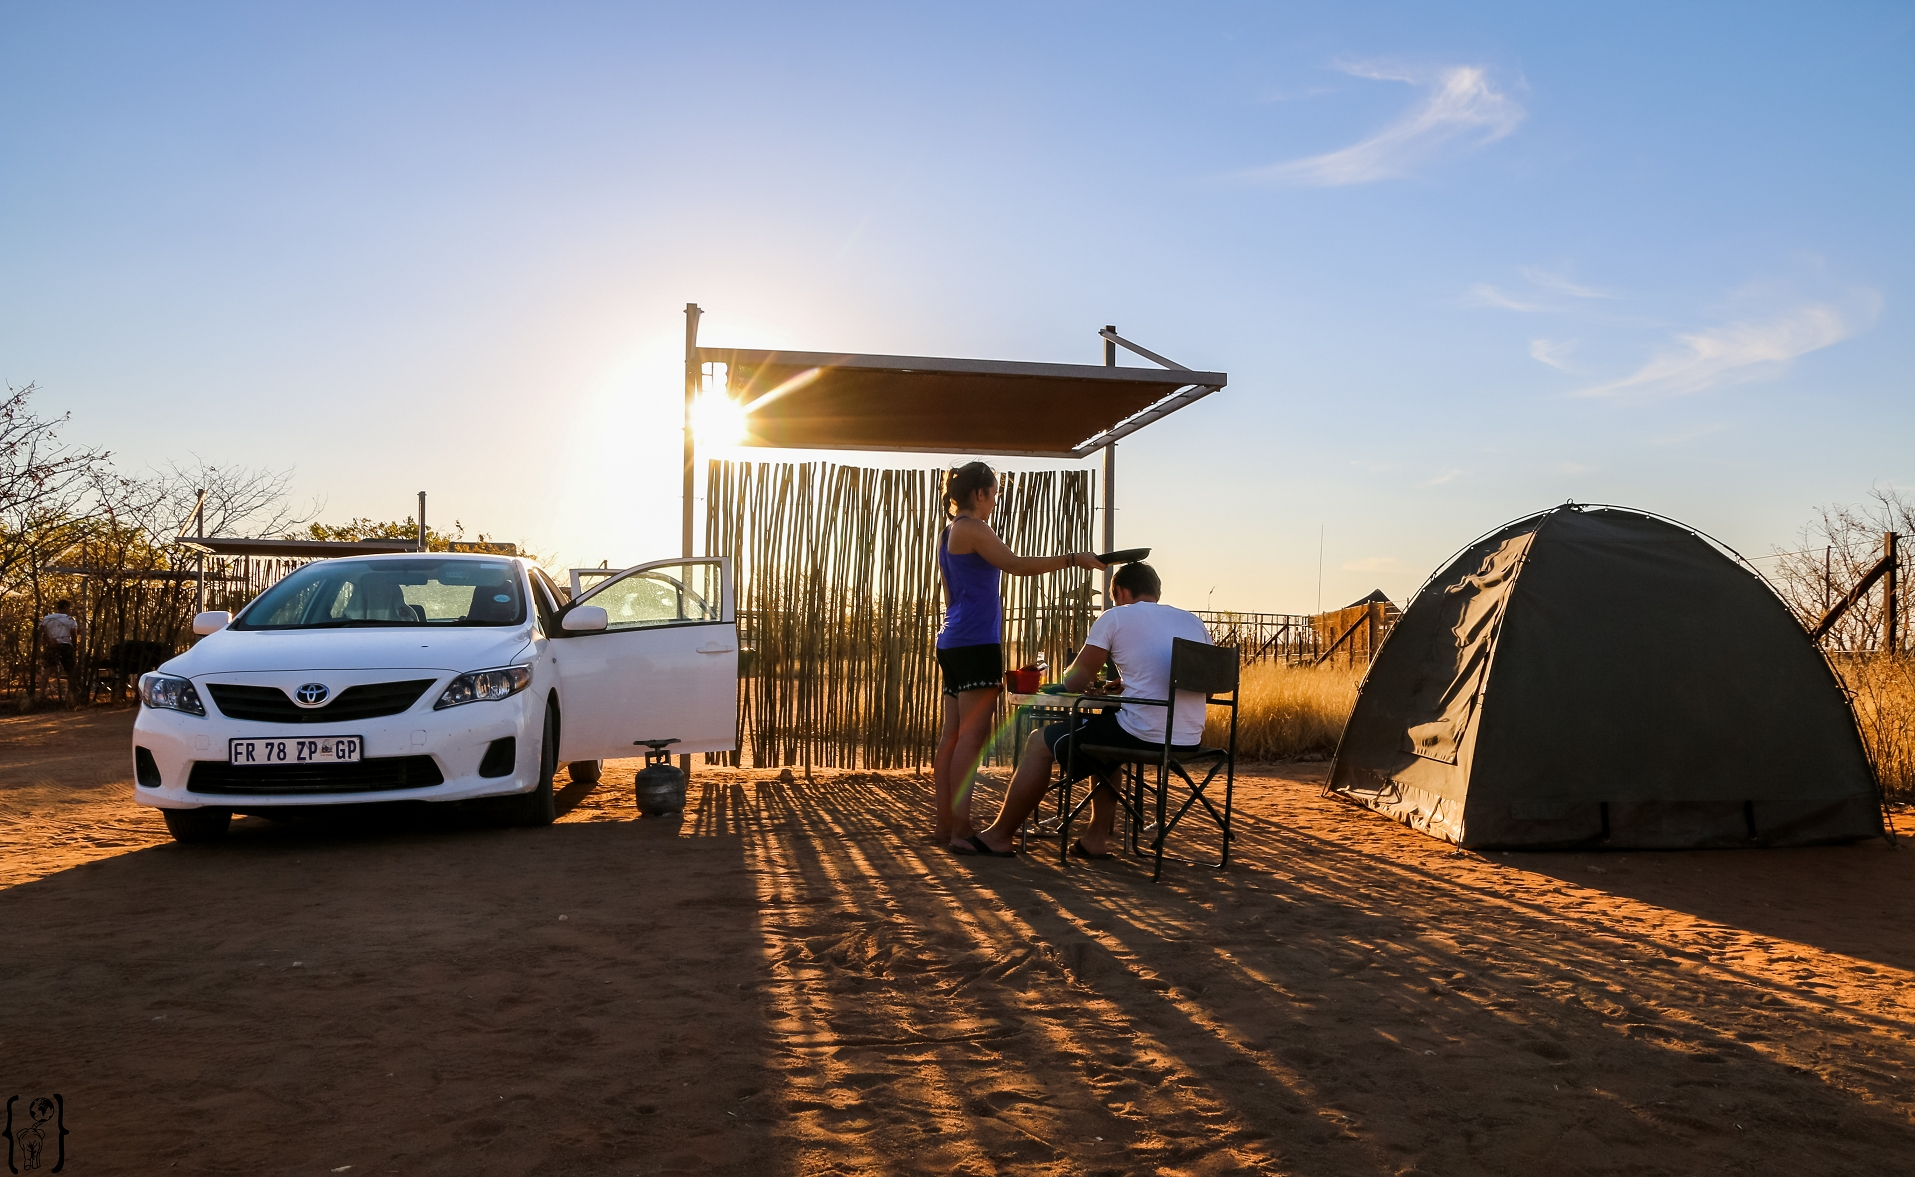 Camping mit Zelt in Namibia